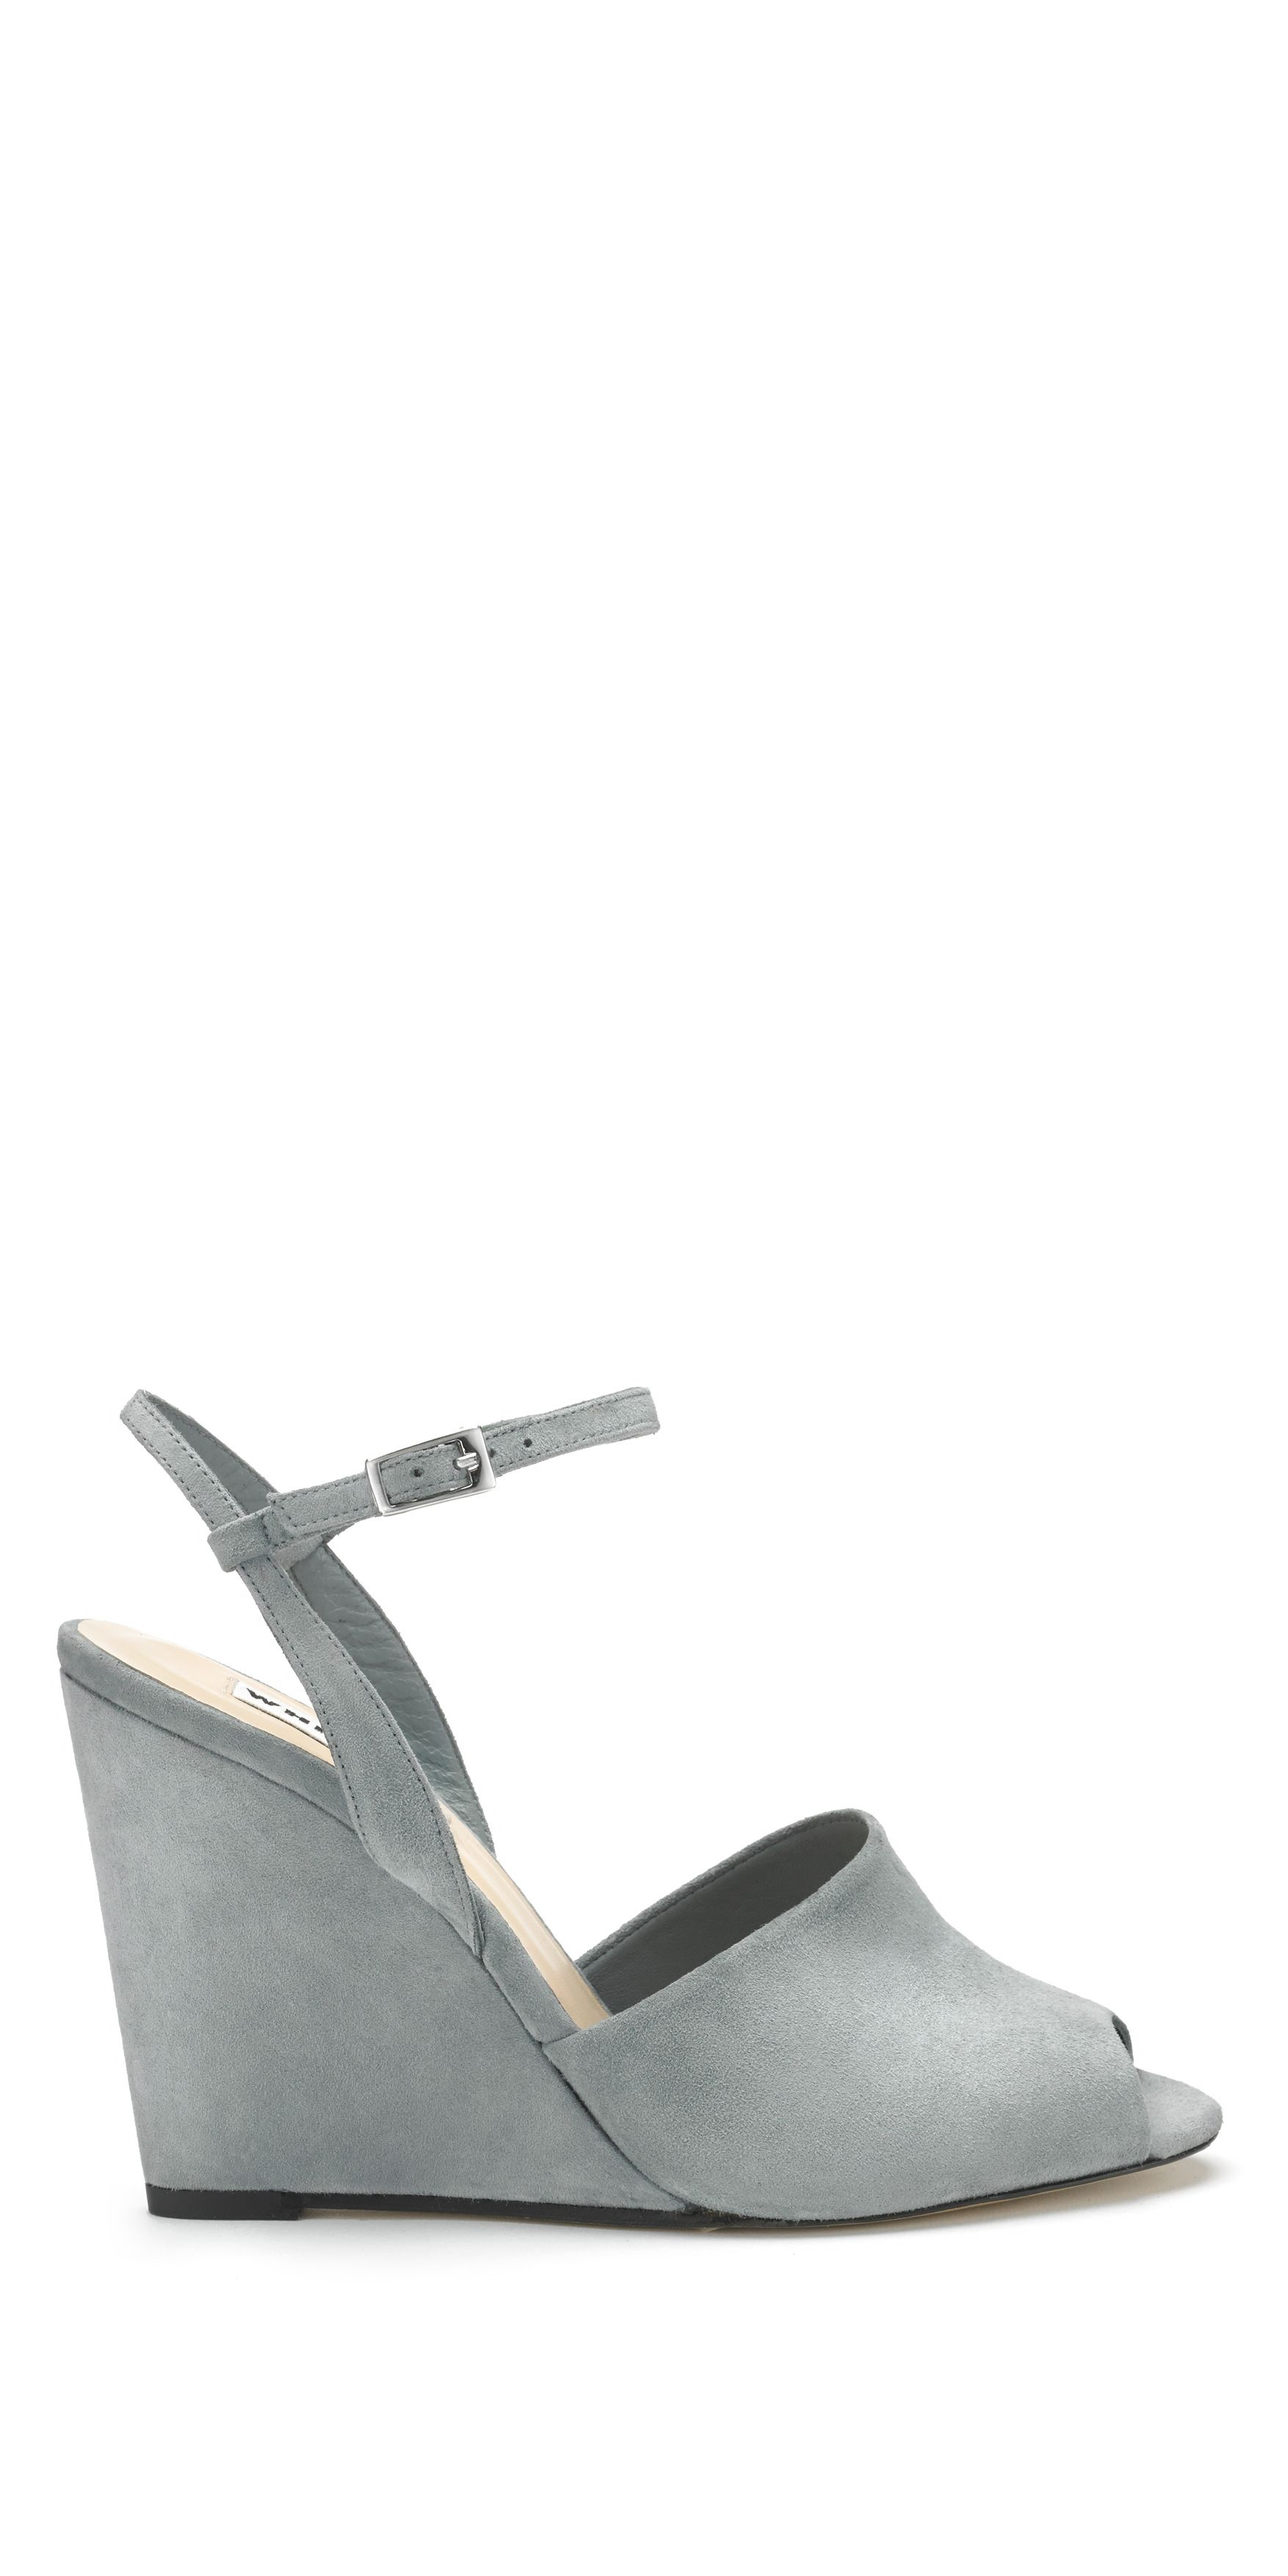 Lily ankle strap wedge